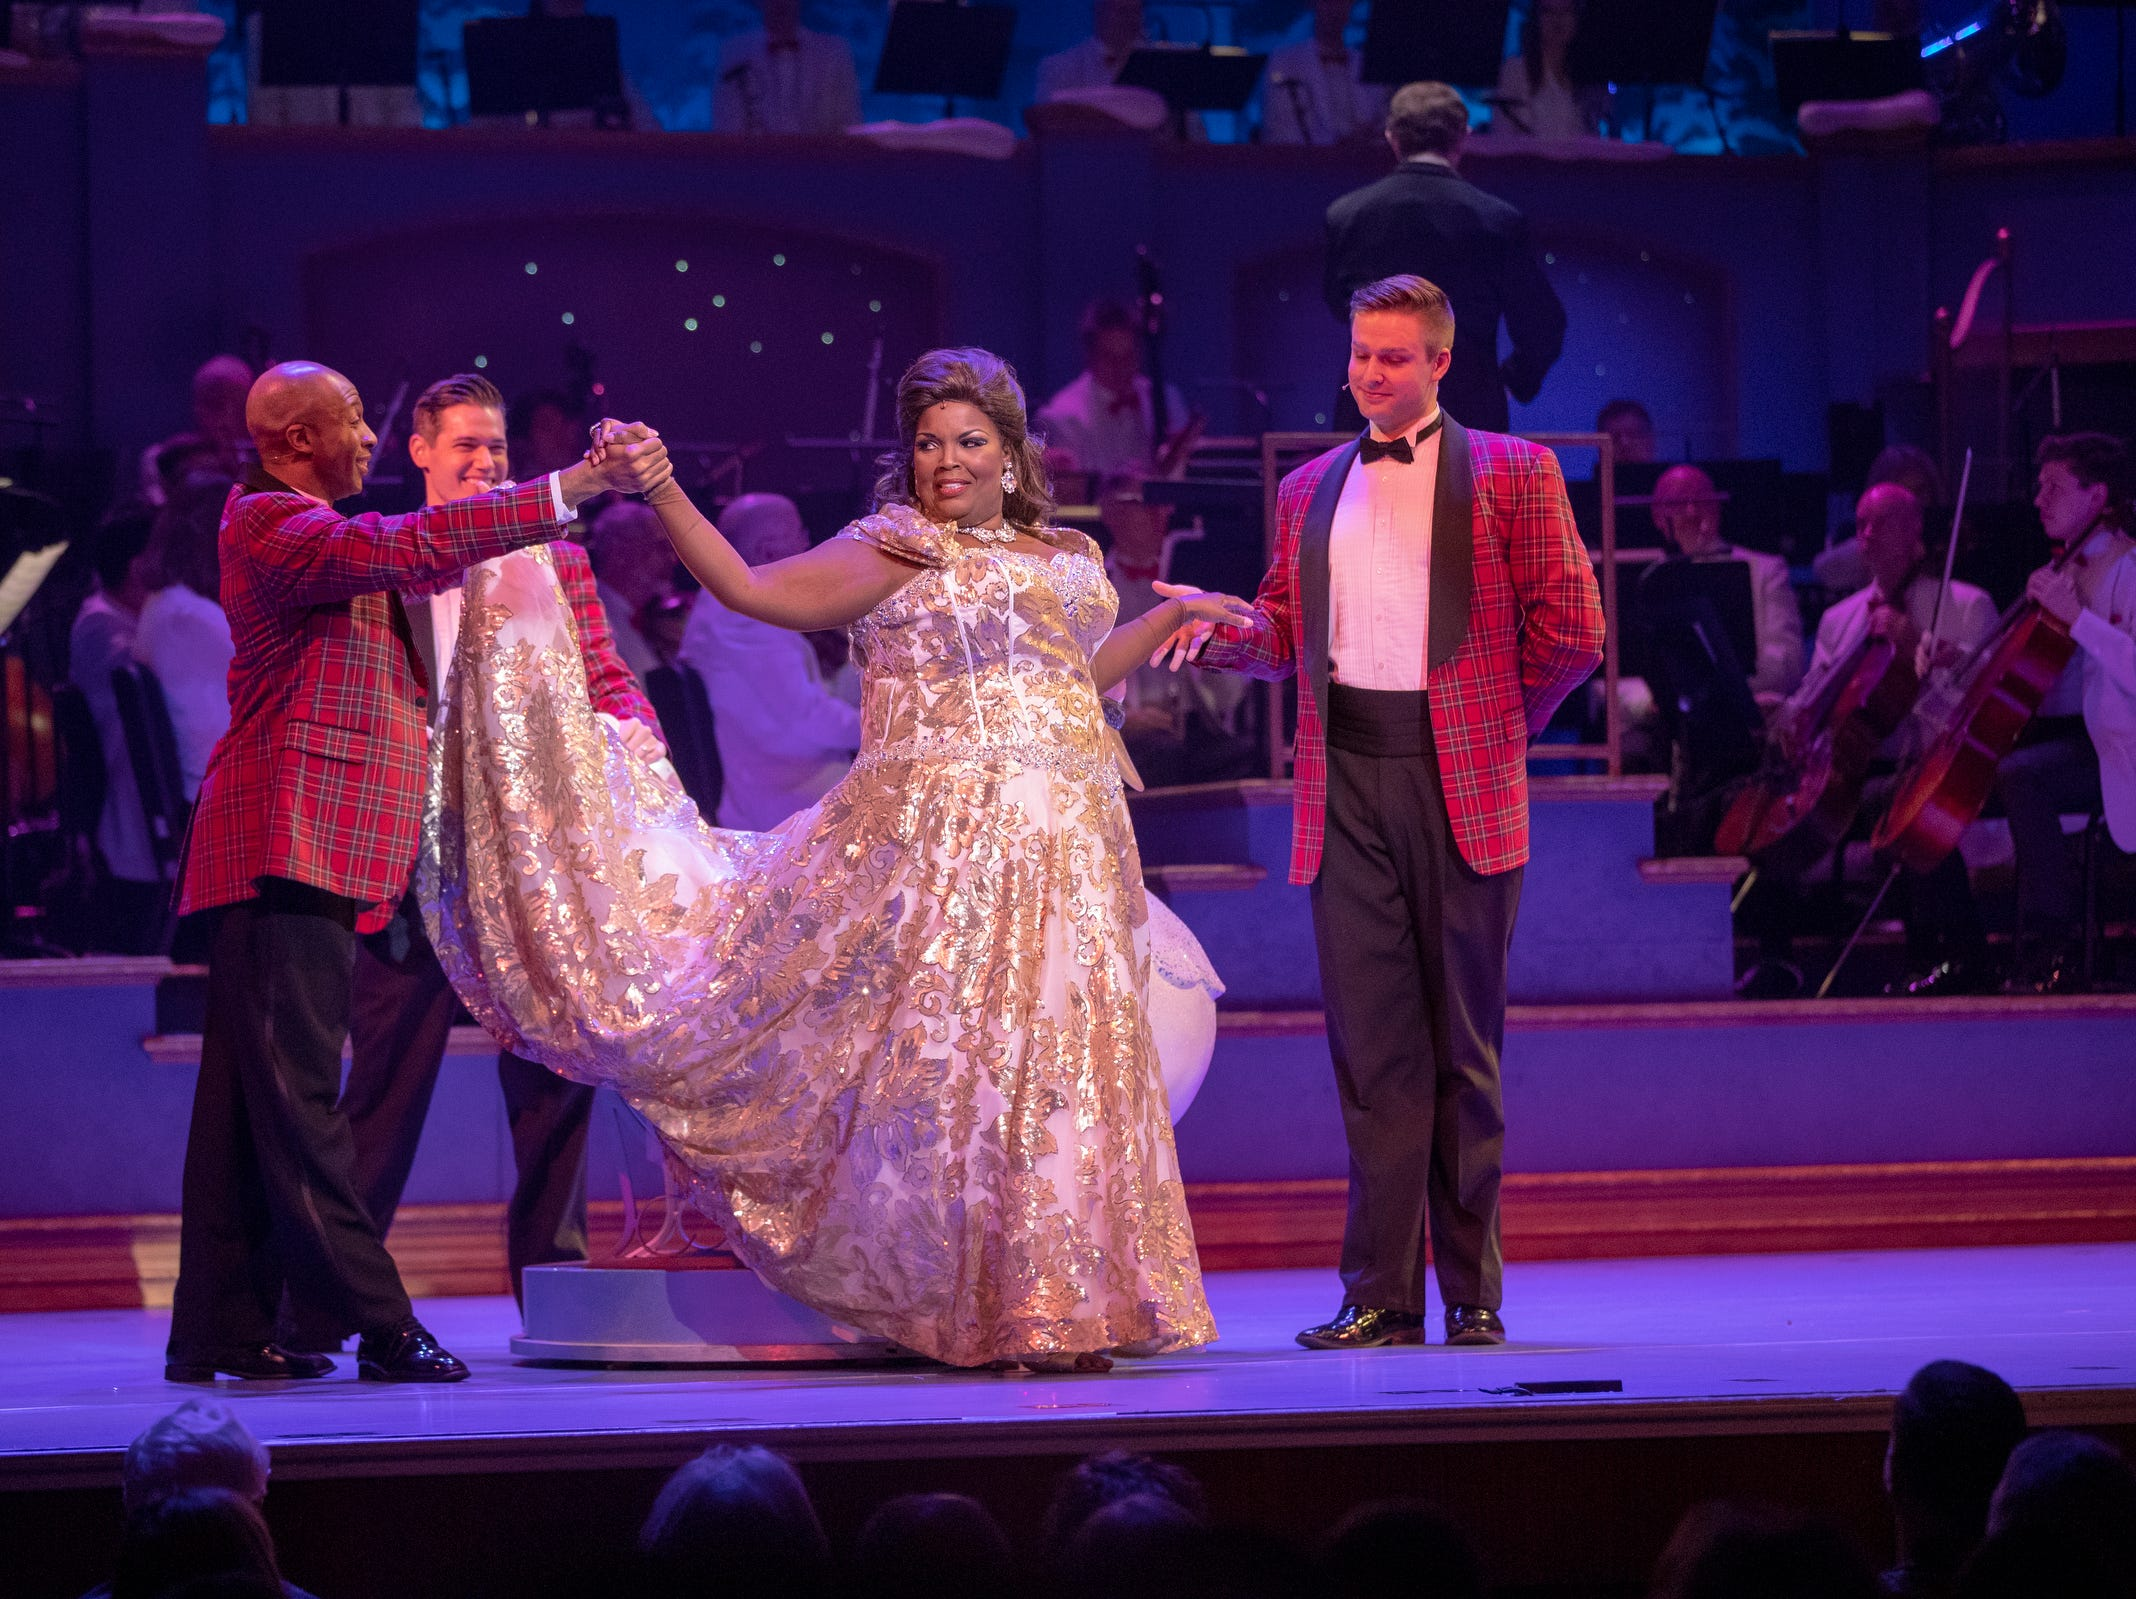 Angela Brown and the Jingle Beaux perform at Yuletide Celebration, showcasing the Indianapolis Symphony Orchestra, at Hilbert Circle Theater, Indianapolis, Sunday. Dec. 23, 2018. The extravaganza features dancing, holiday songs, and skits.